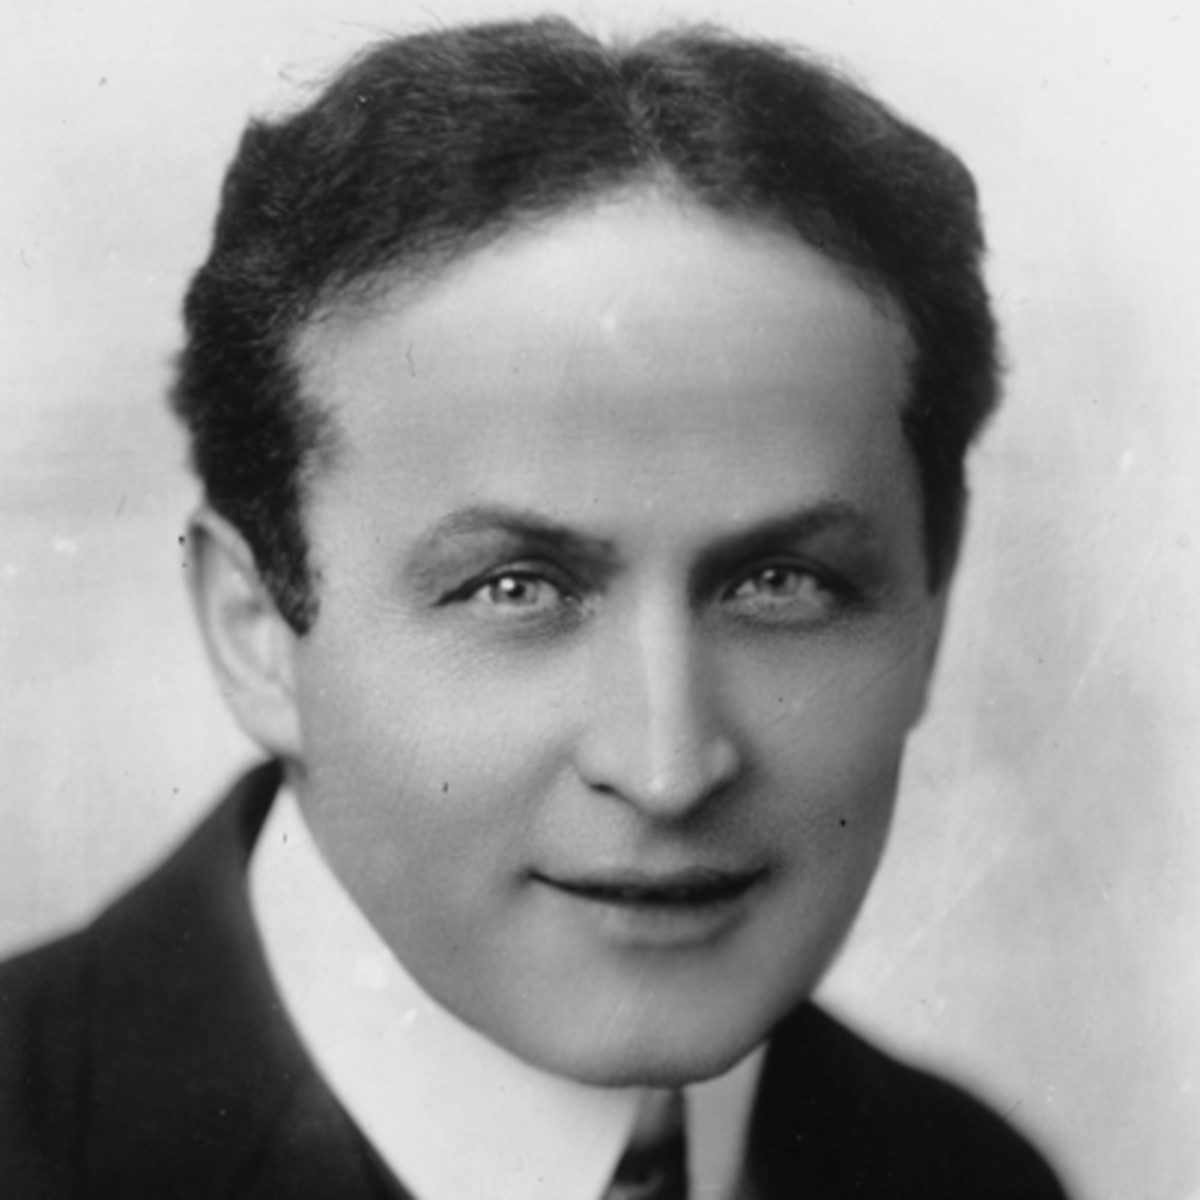 Harry Houdini - Death, Life & Quotes - Biography